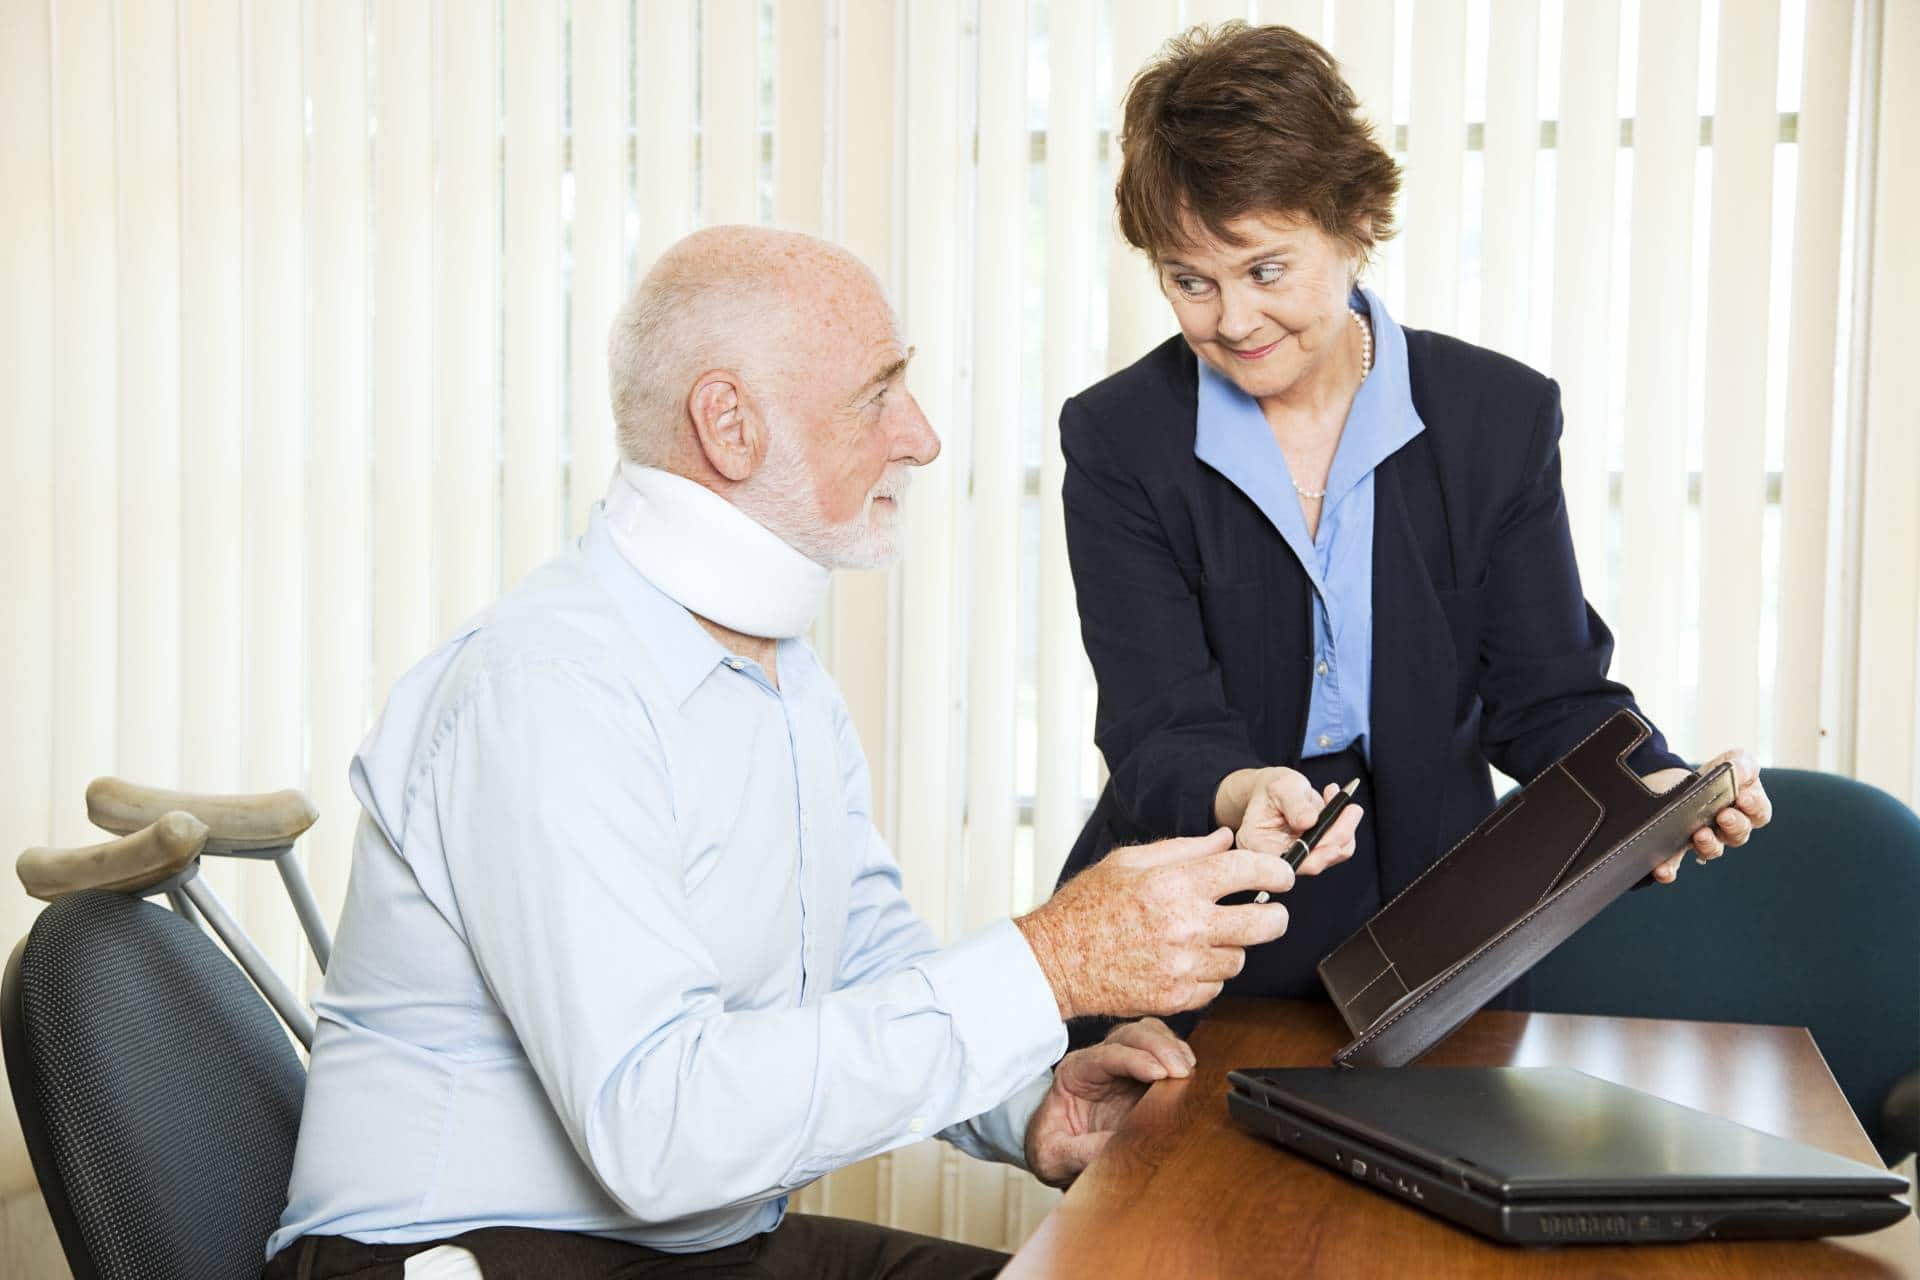 Schedule a free consultation with our personal injury lawyers at the Angell Law Firm in Buckhead, Ga